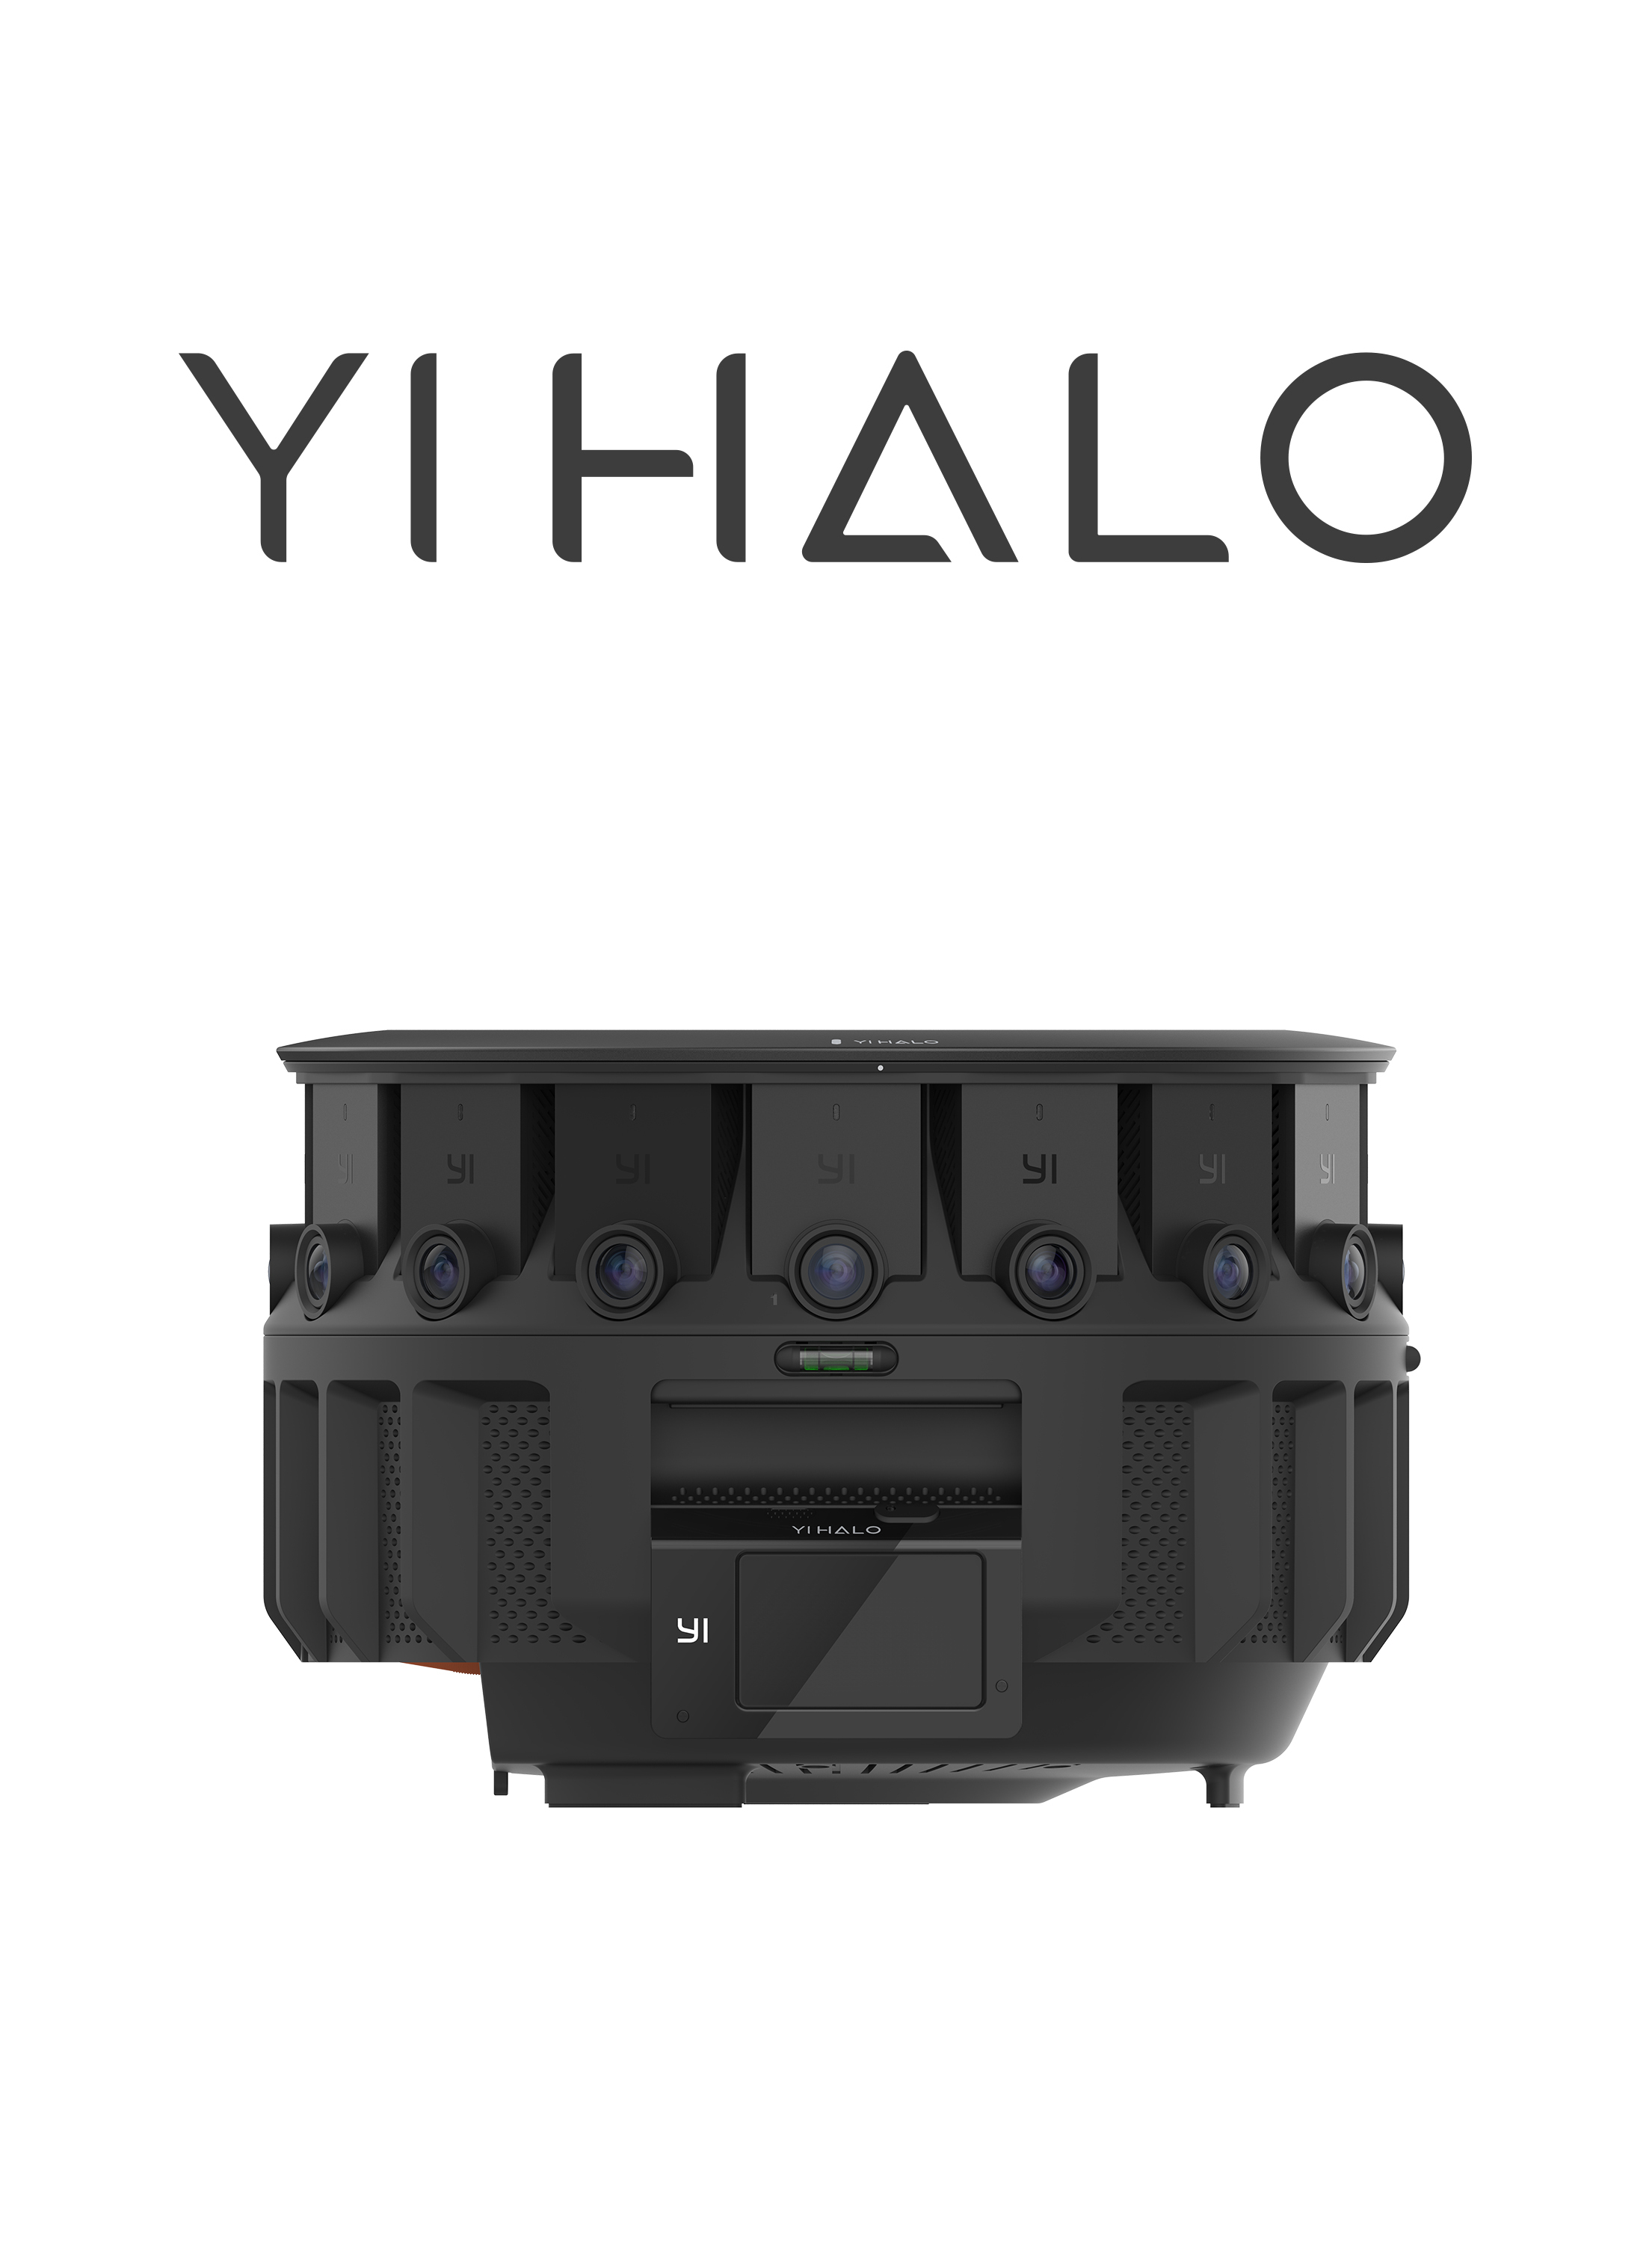 YI Technology announces YI HALO, a next generation virtual reality camera built with Google's Jump technology. (Photo: Business Wire)